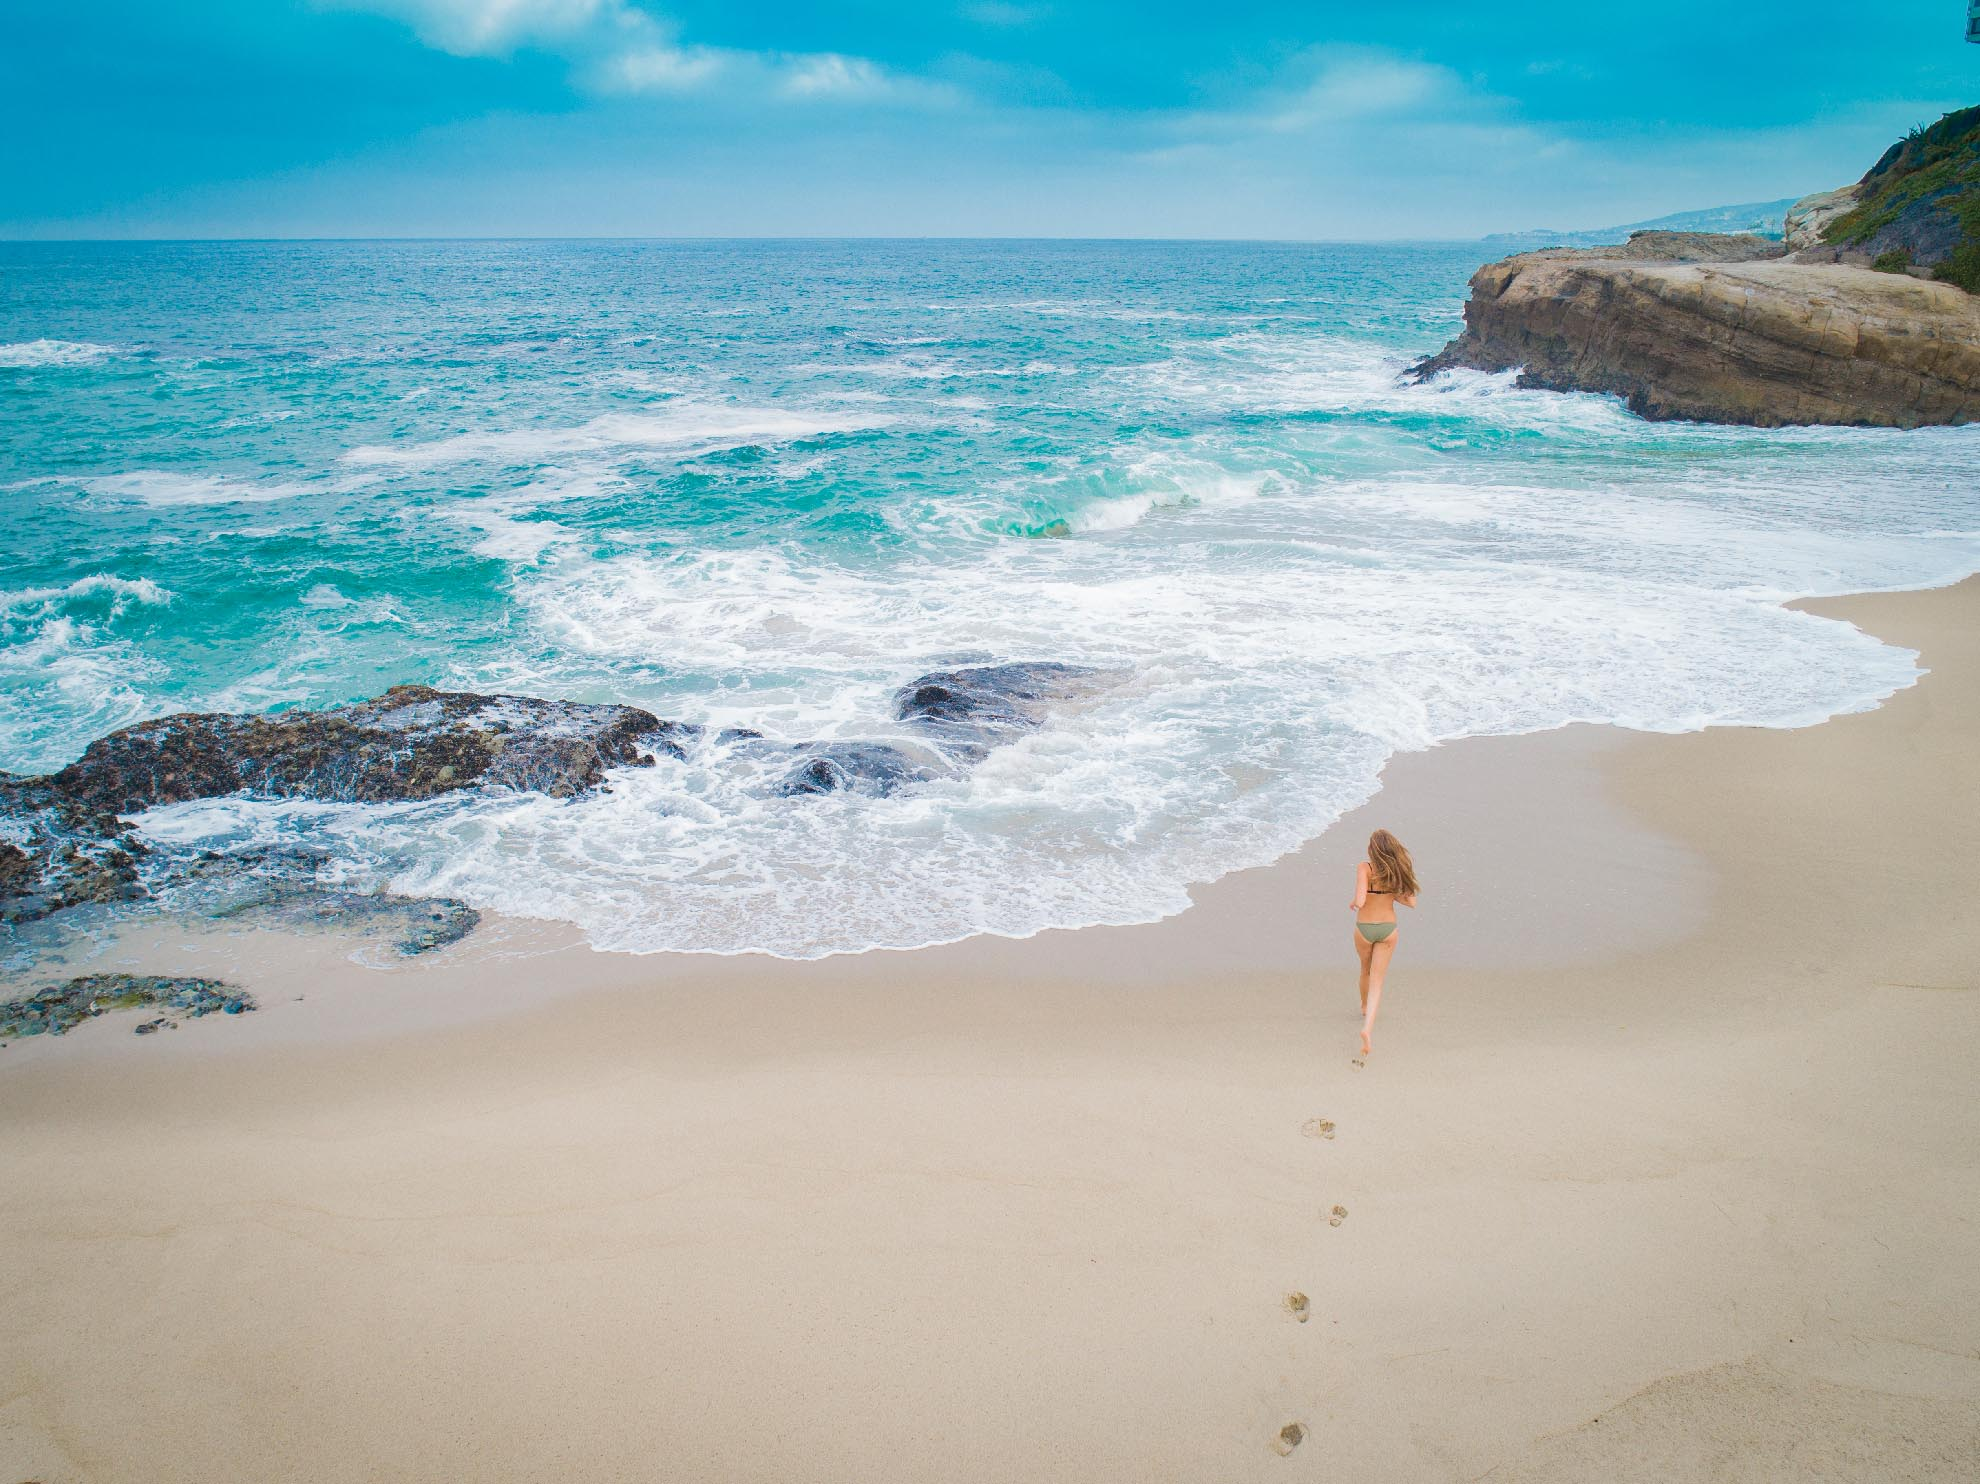 Drone Photgraph of young woman running on table rock beach California